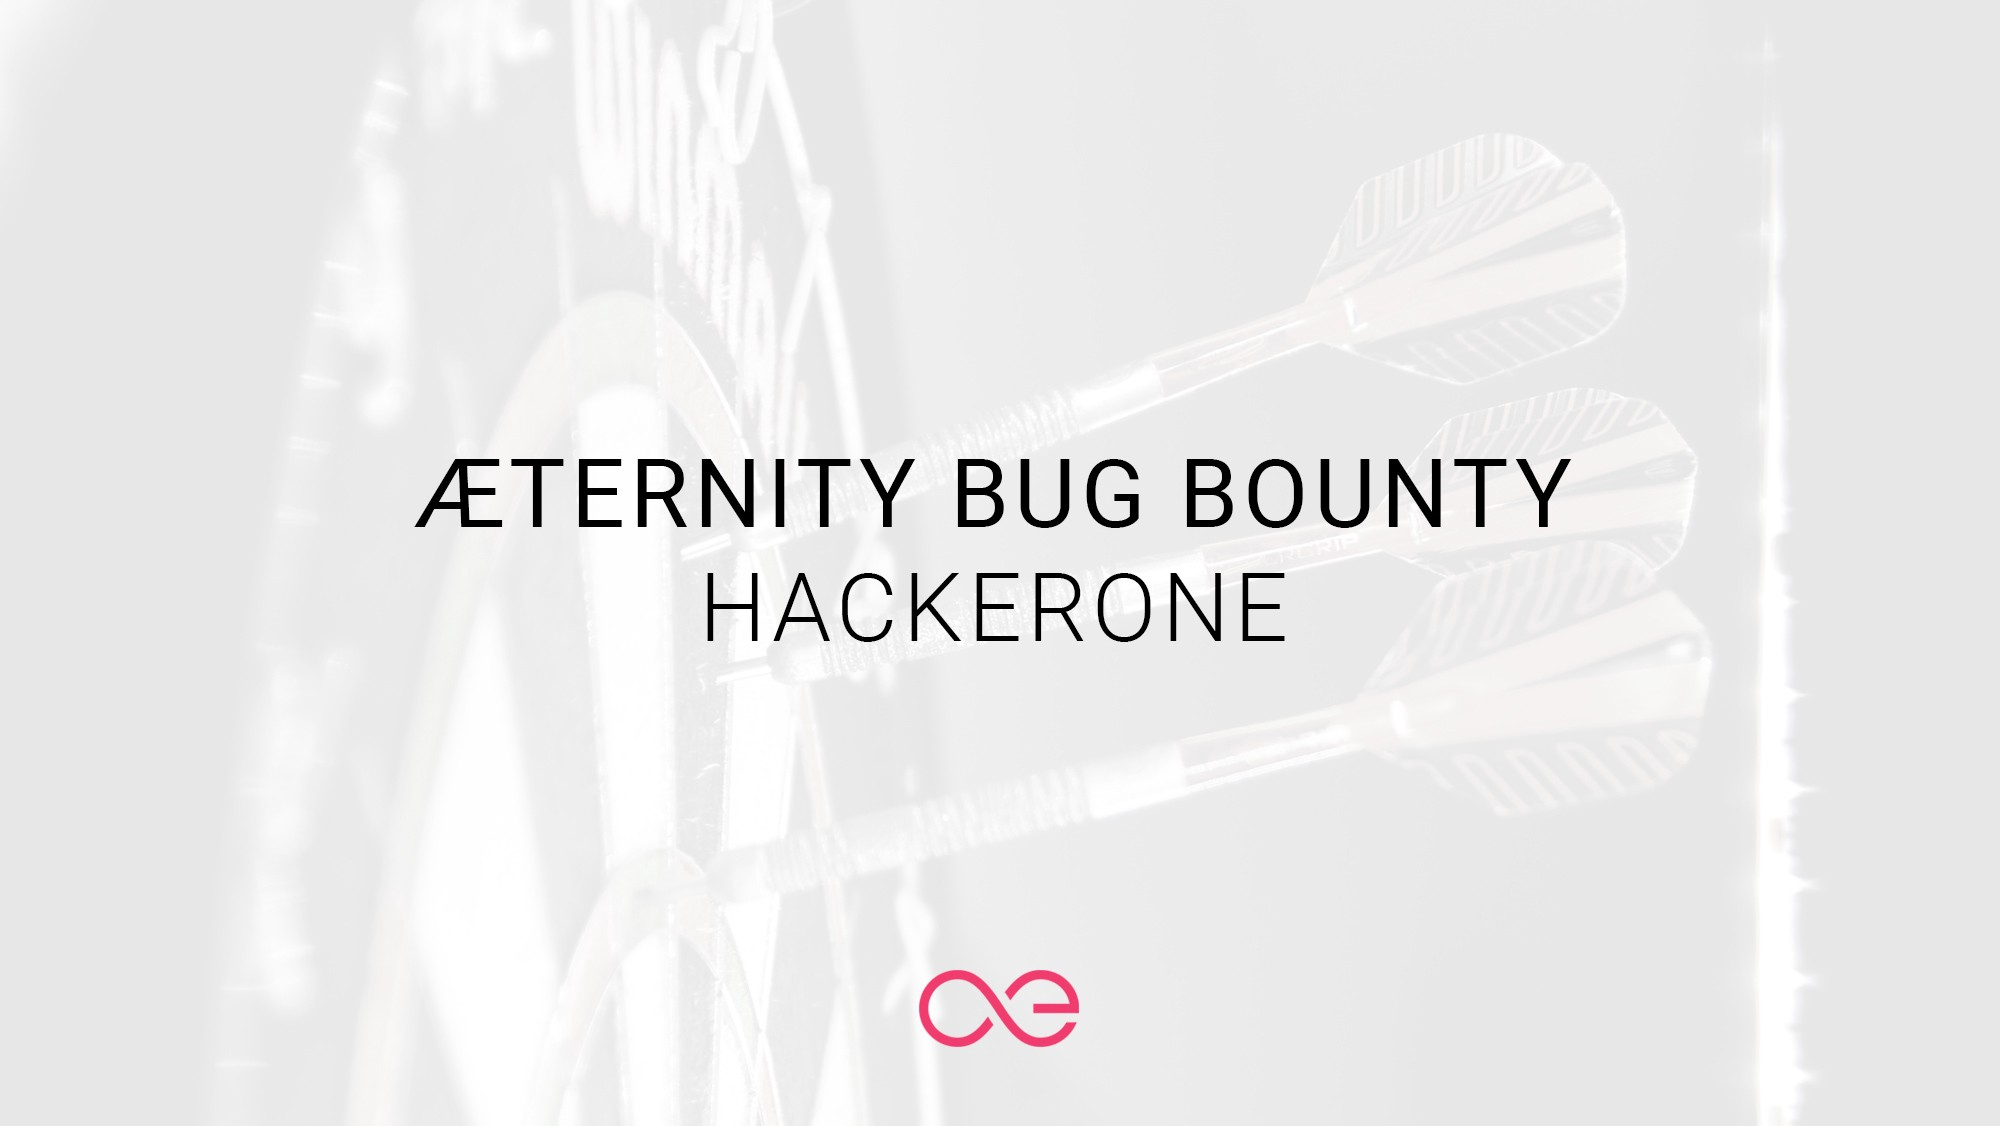 æternity's Bug Bounty at HackerOne - æternity blog